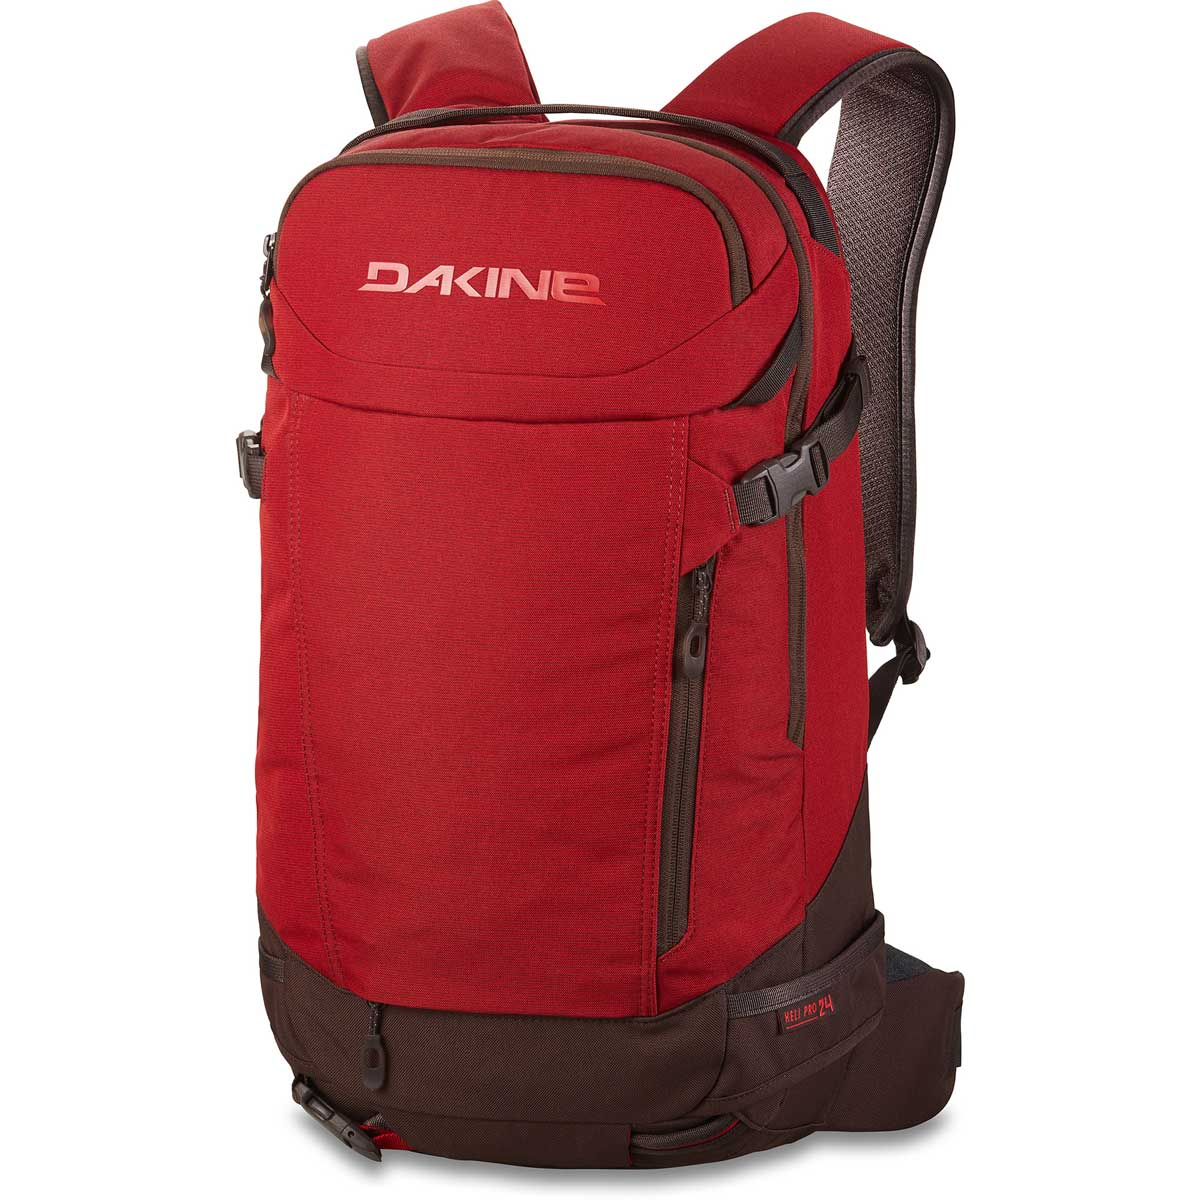 Dakine Heli Pro 24L Backpack in Deep Red